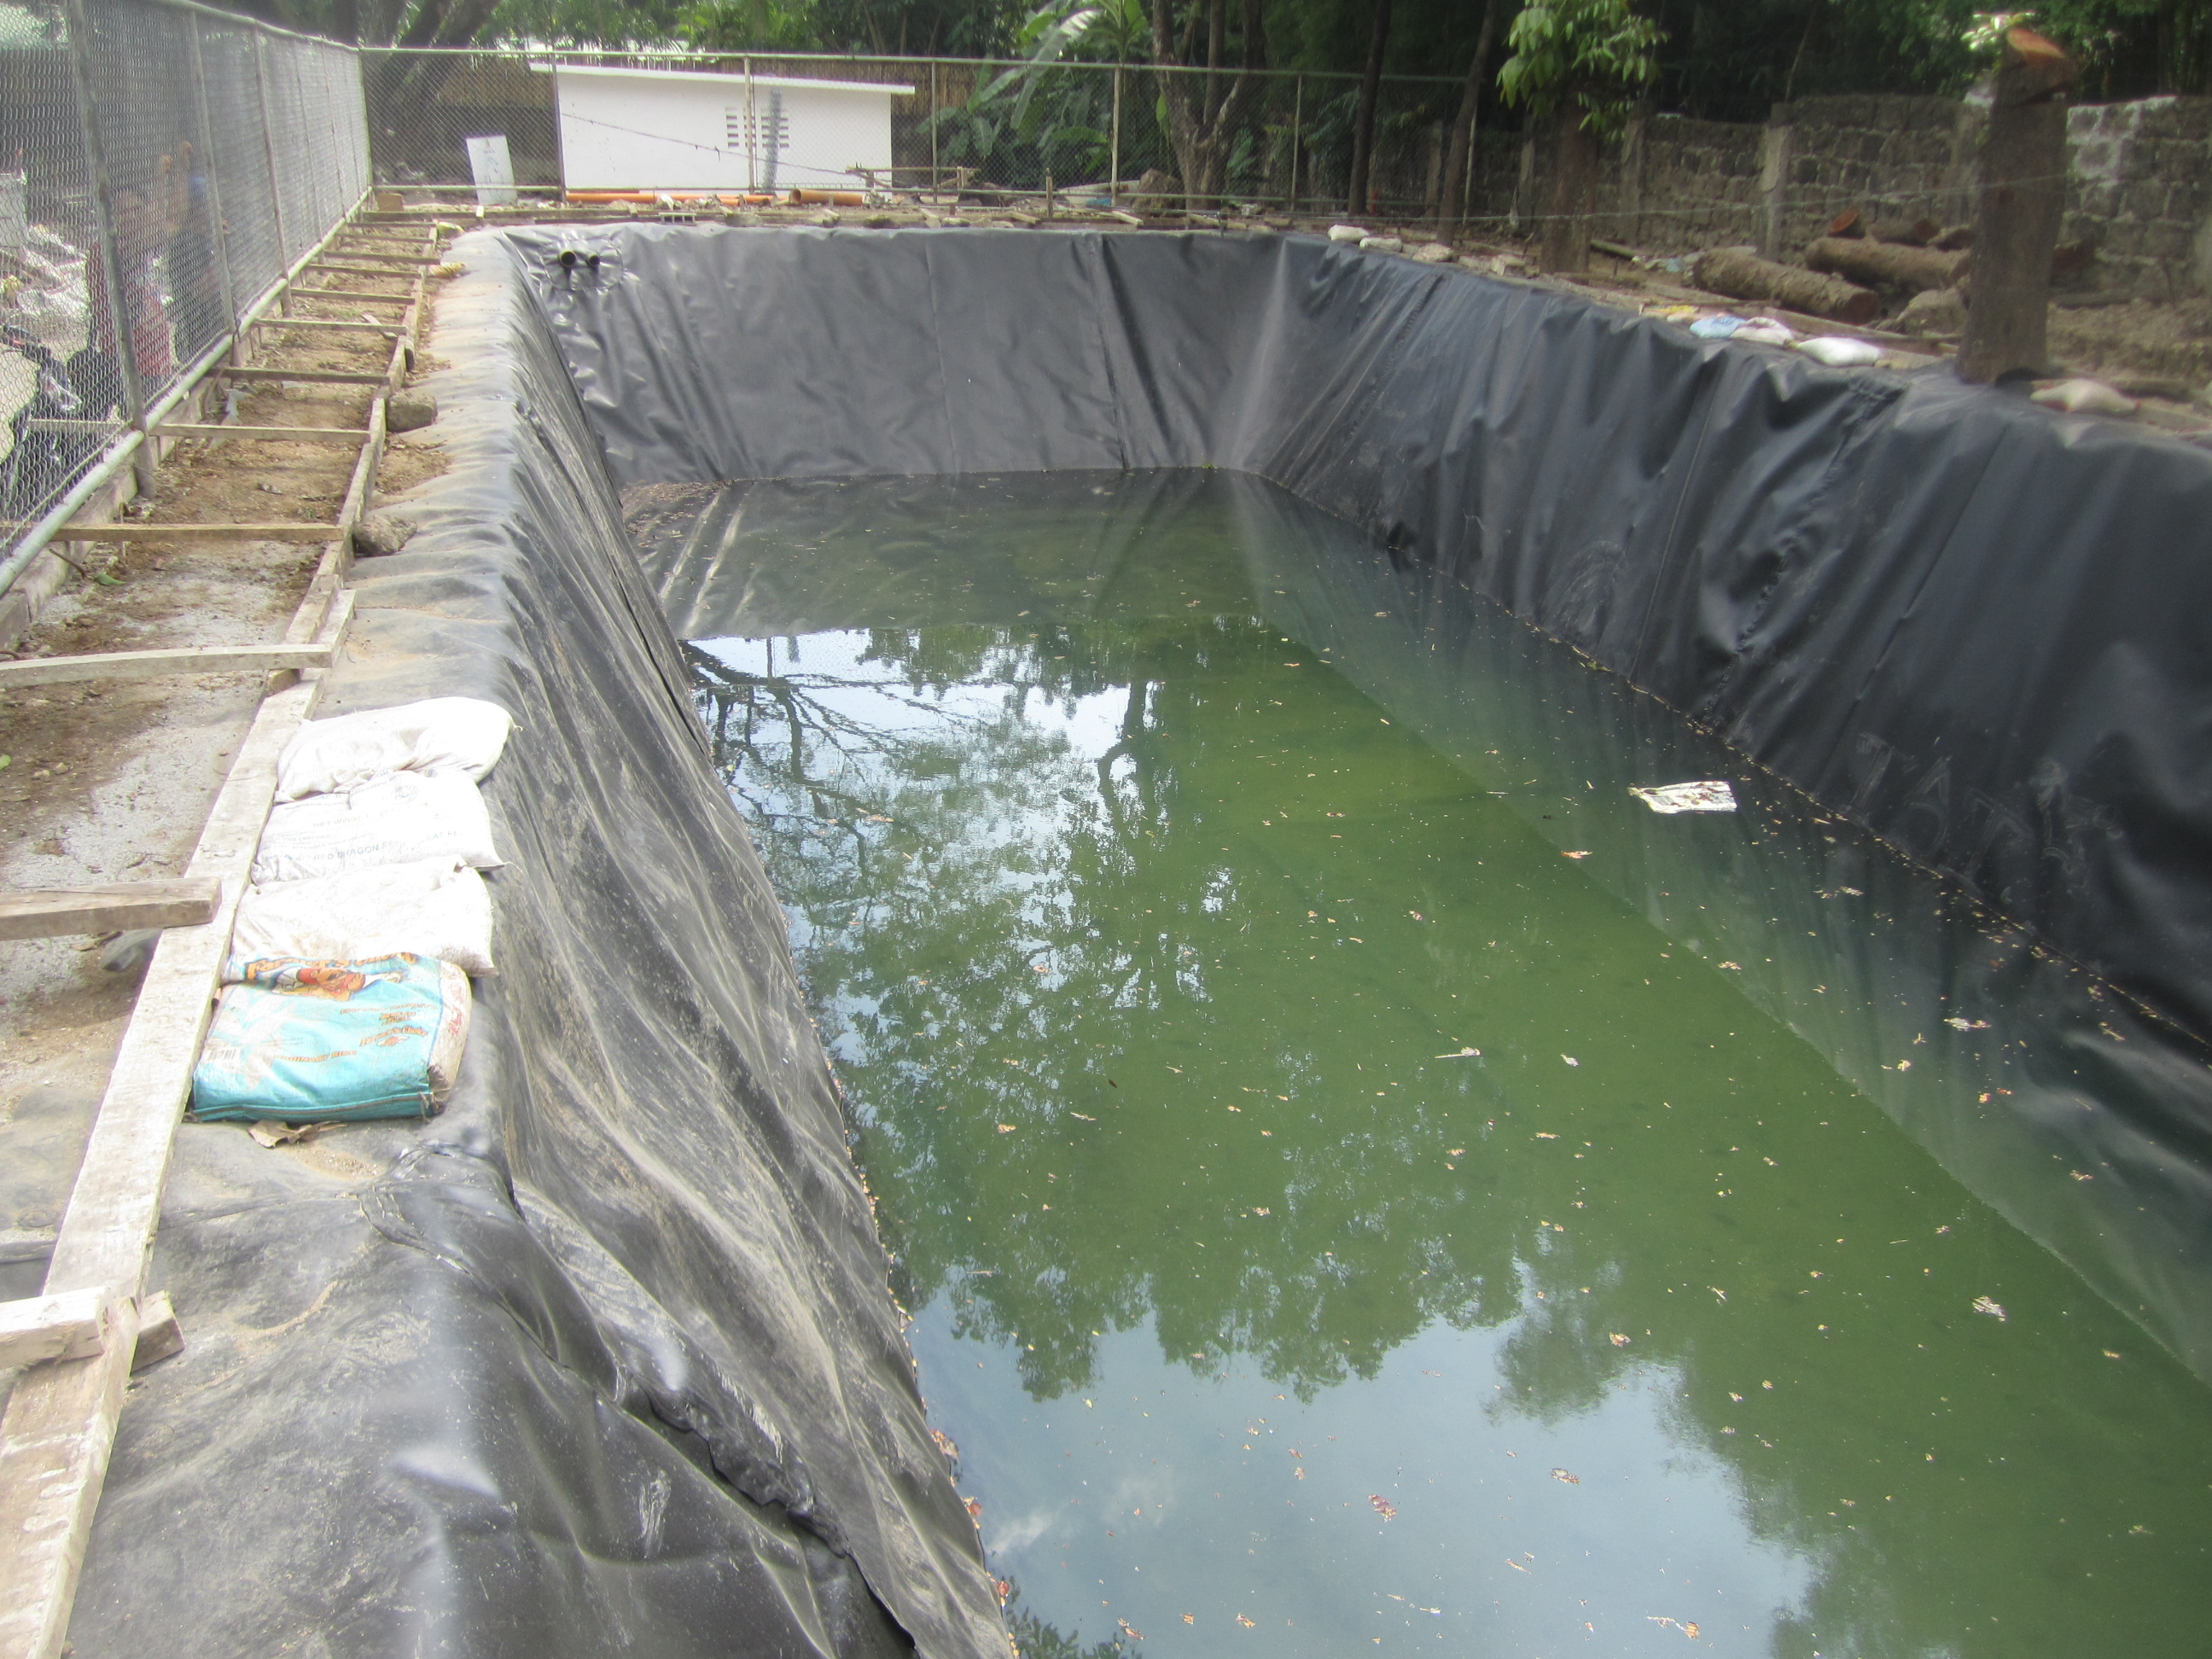 Pond liner fabrimetrics philippines inc for Best koi pond liner